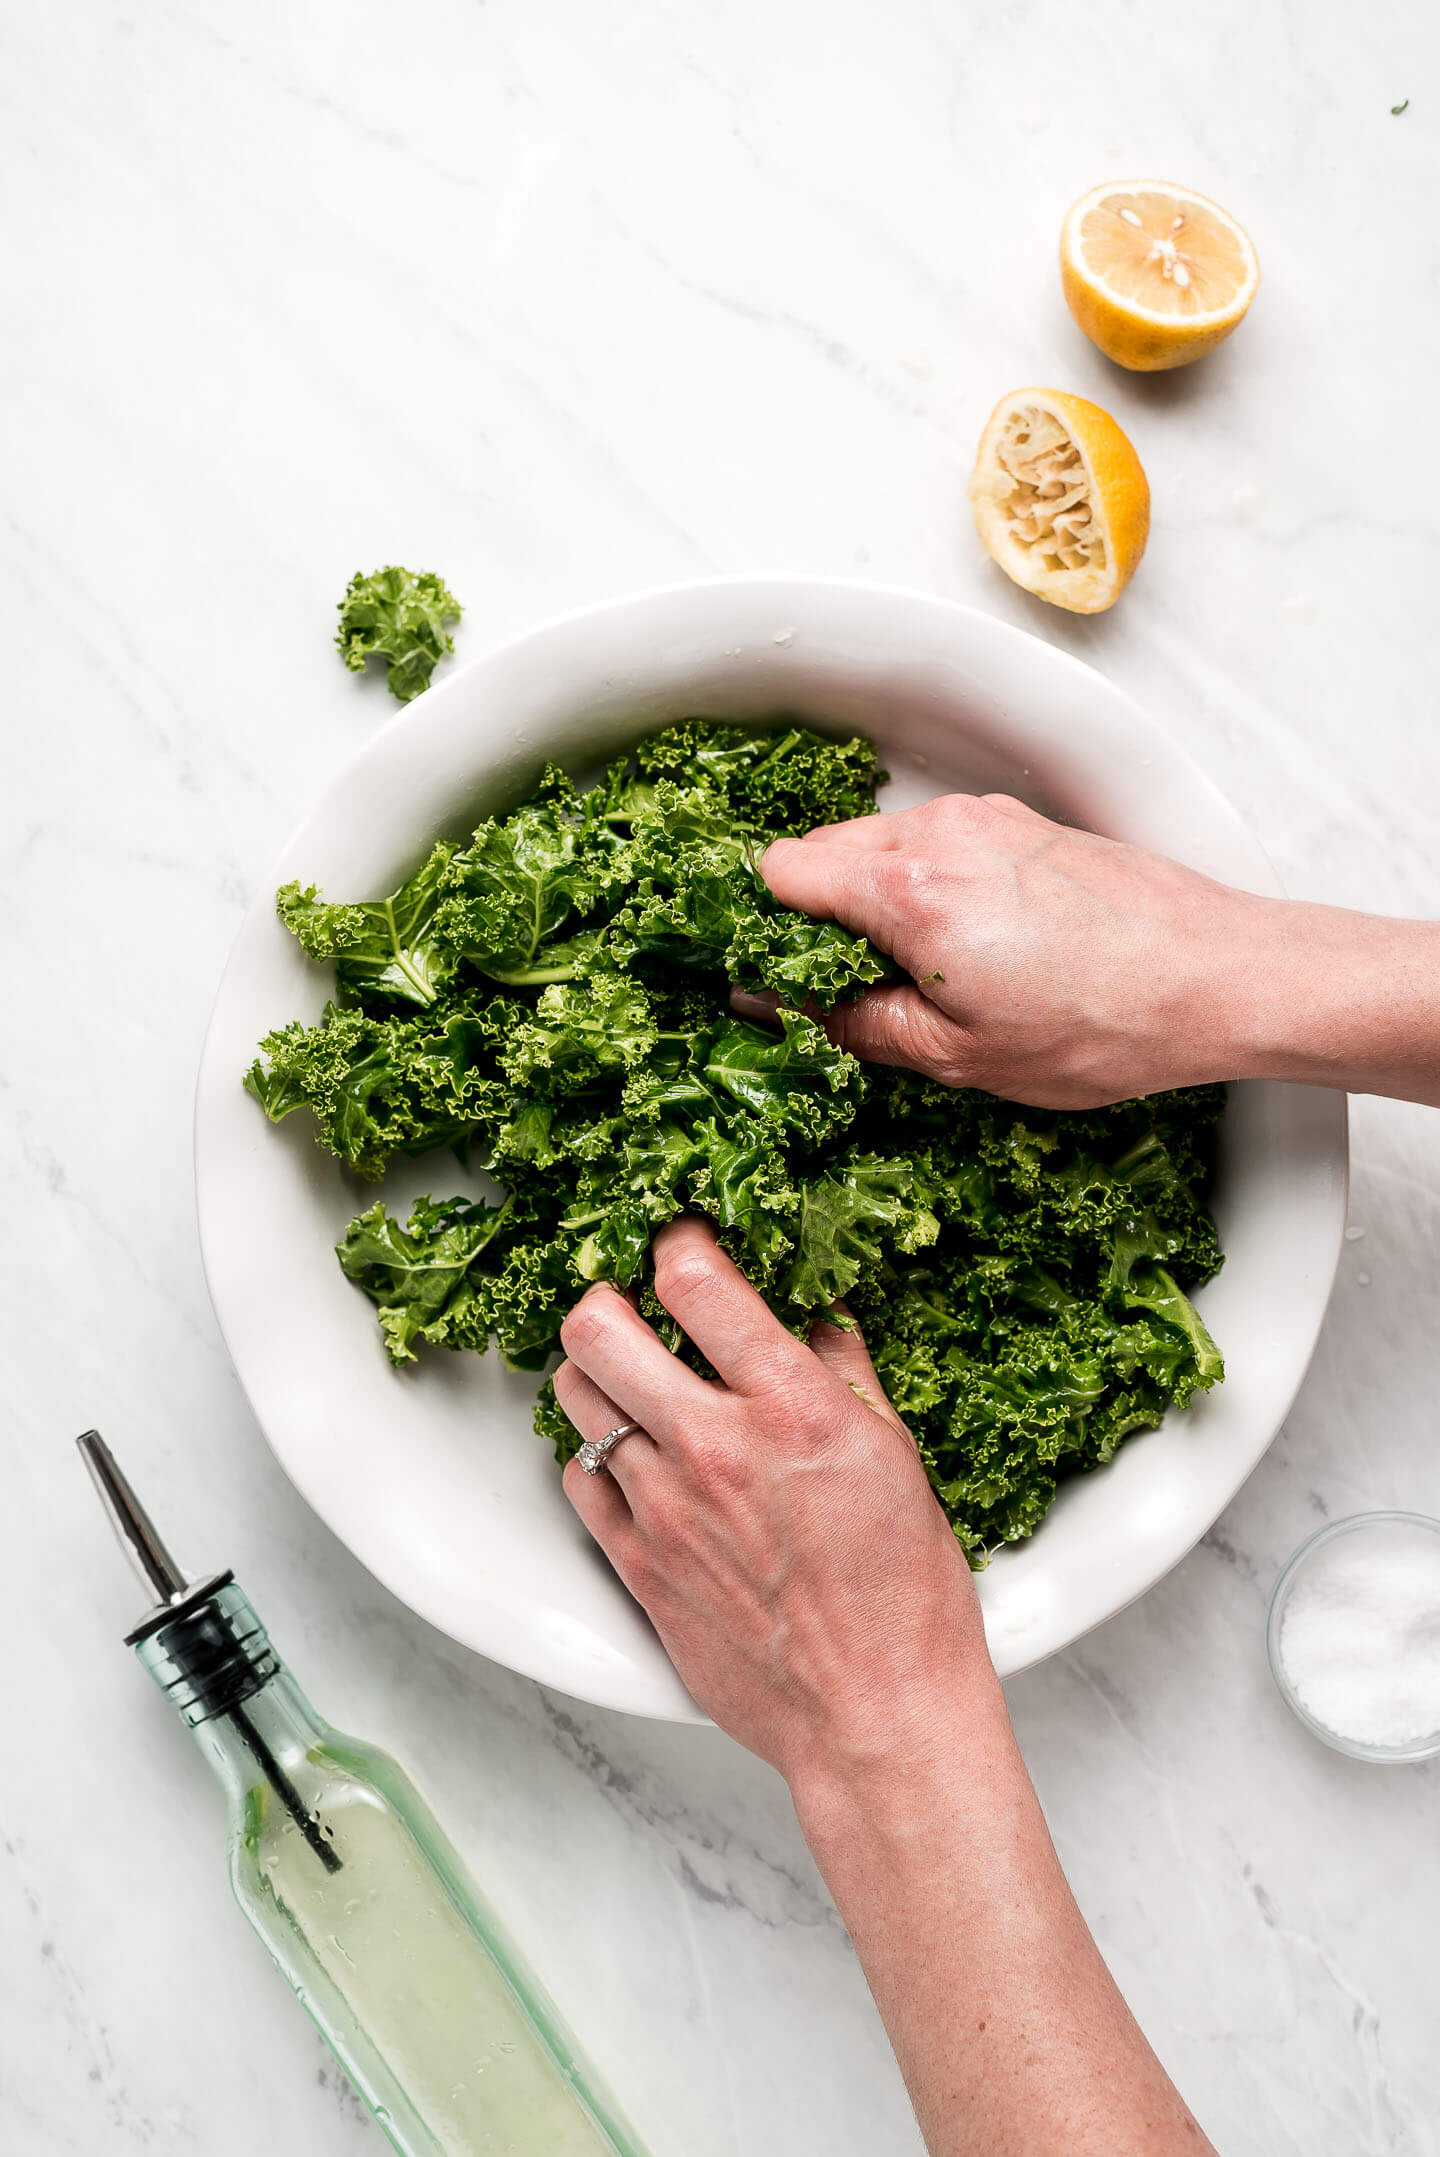 Photo showing how to massage kale by grabbing it in hands and rubbing it between fingers.